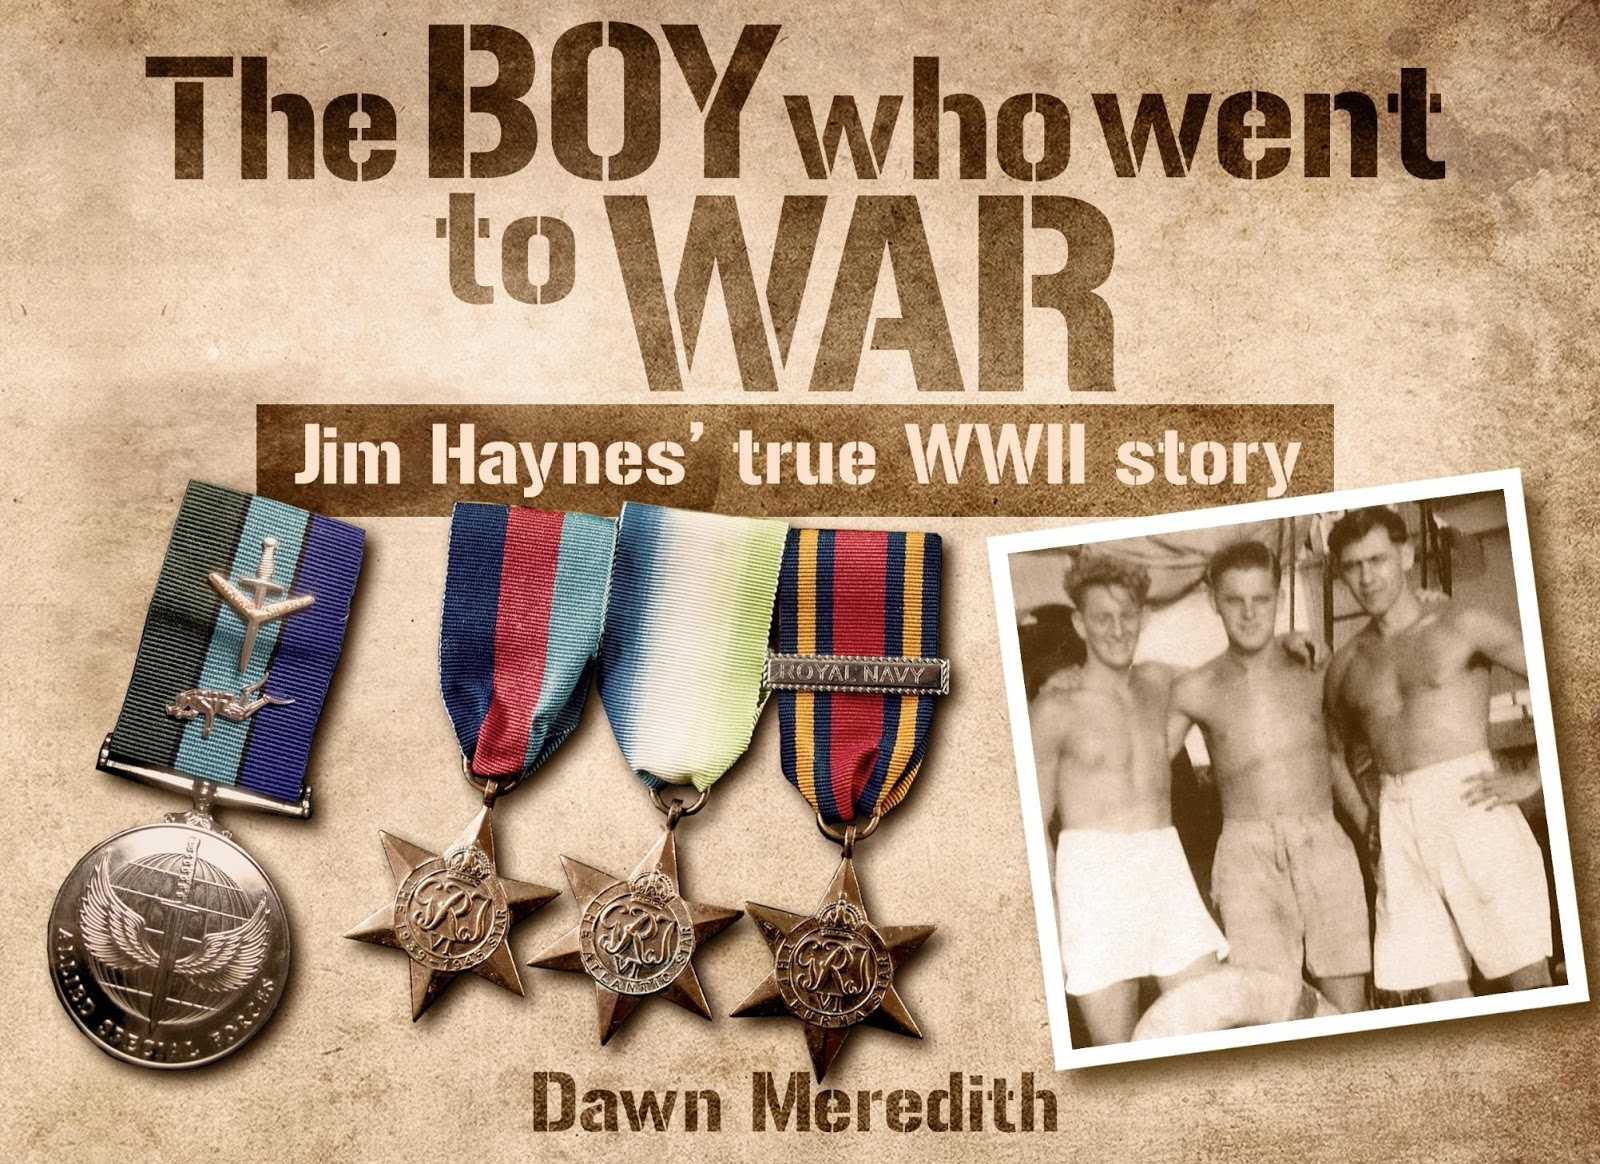 The_Boy_Who_Went_to War - Dawn Meredith